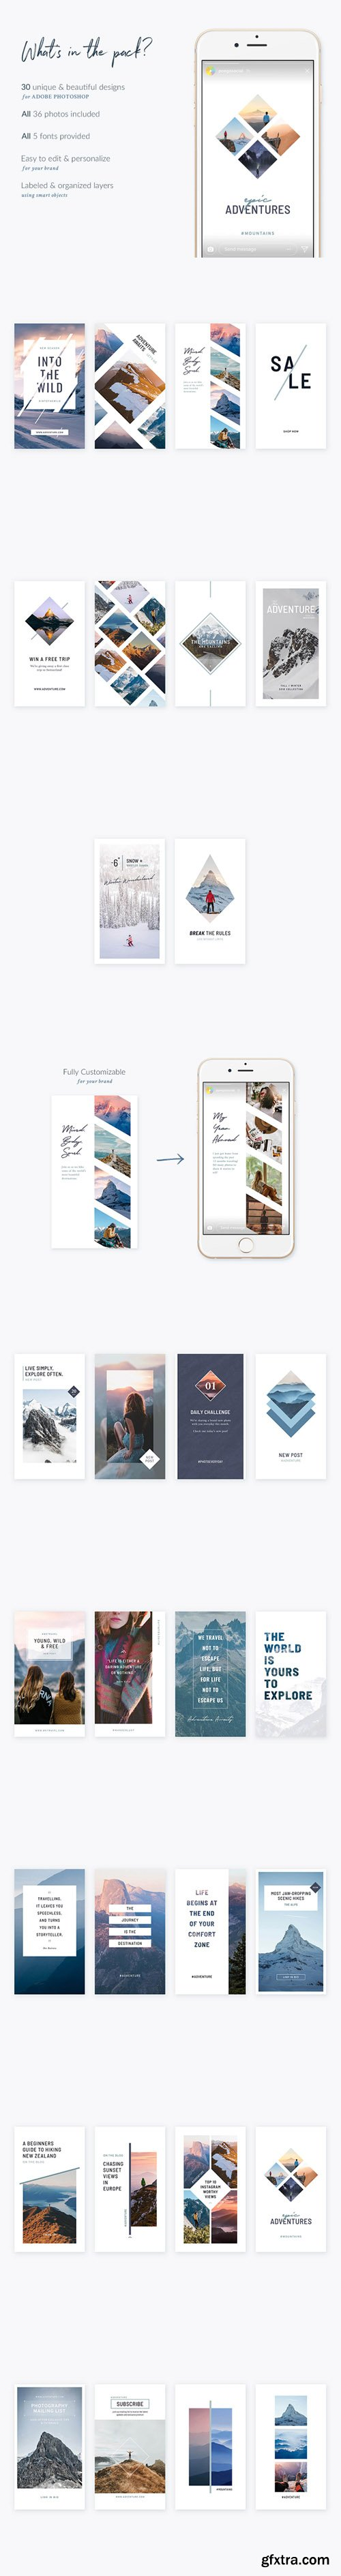 Mountains Instagram Stories - 30 Beautiful Instagram Story templates designed in Photoshop